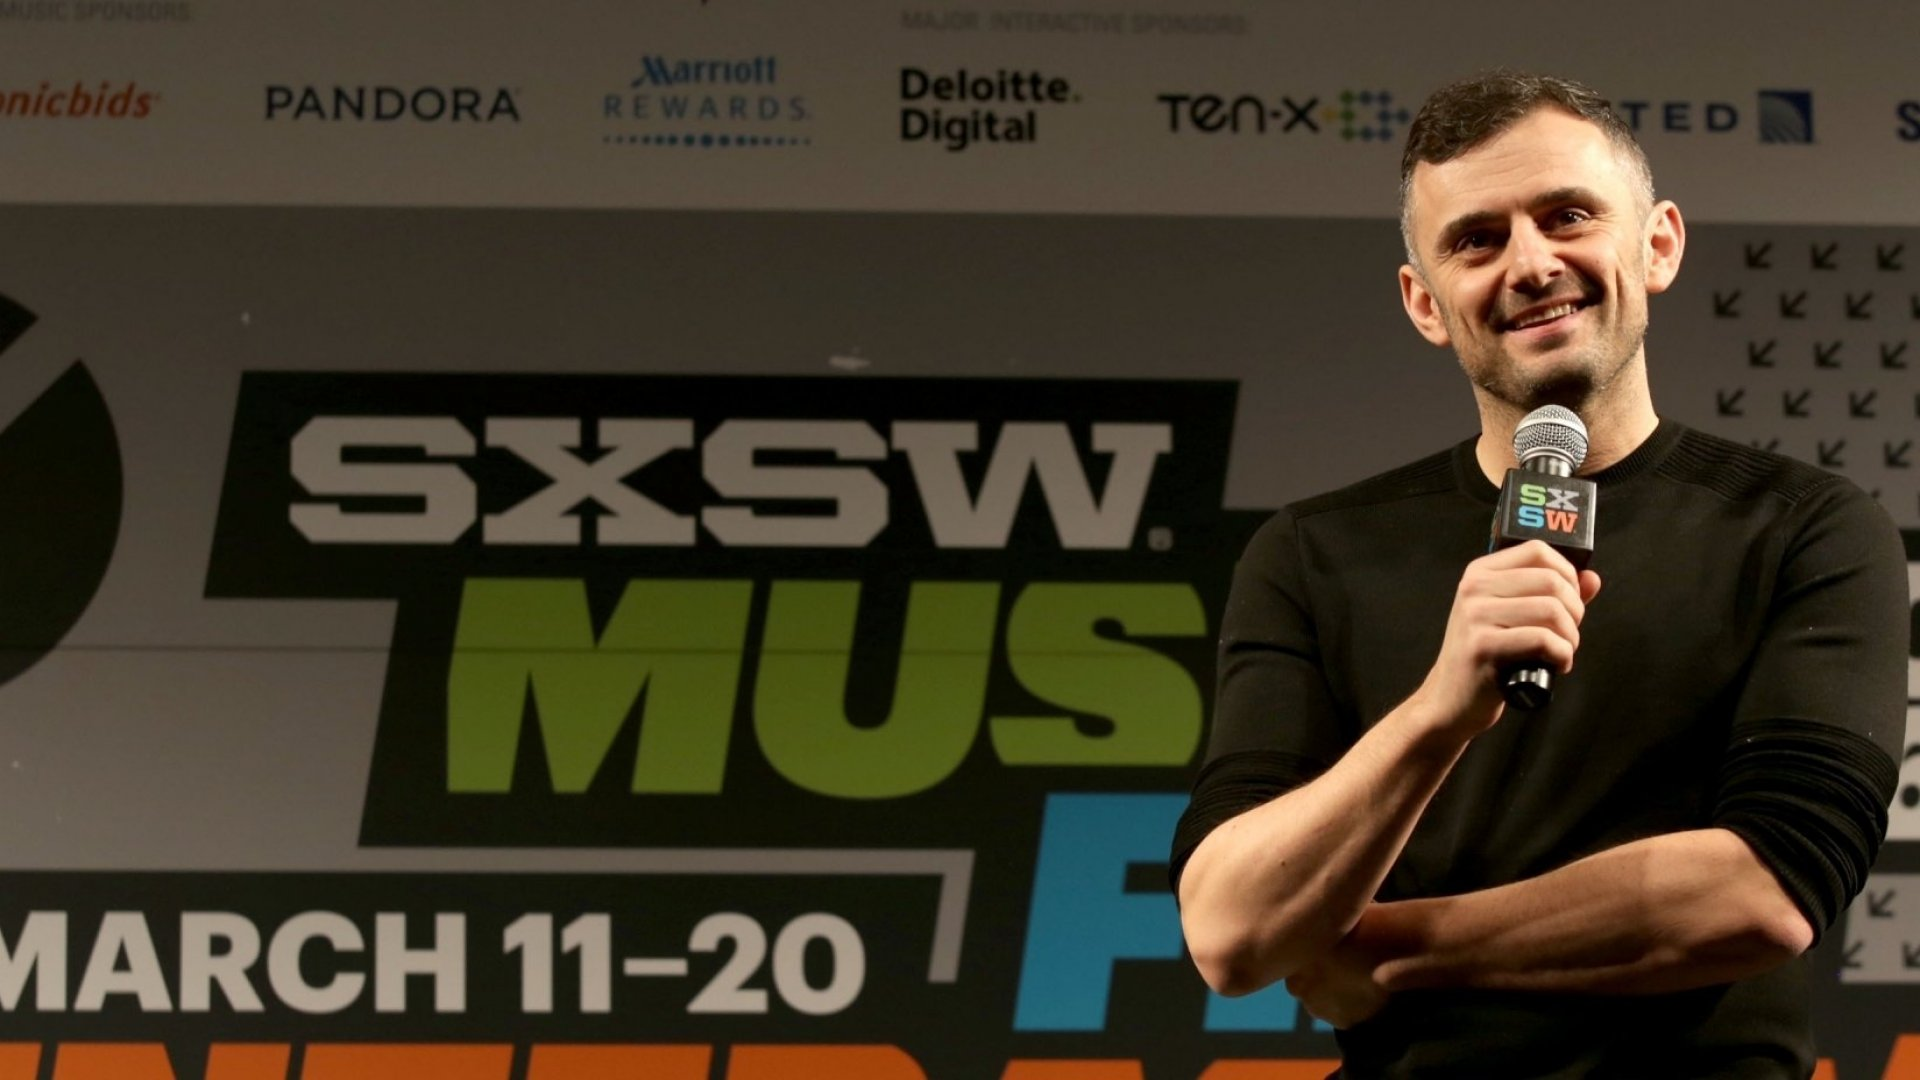 These 4 Unusual Facts About Gary Vaynerchuk Will Make You a Fan